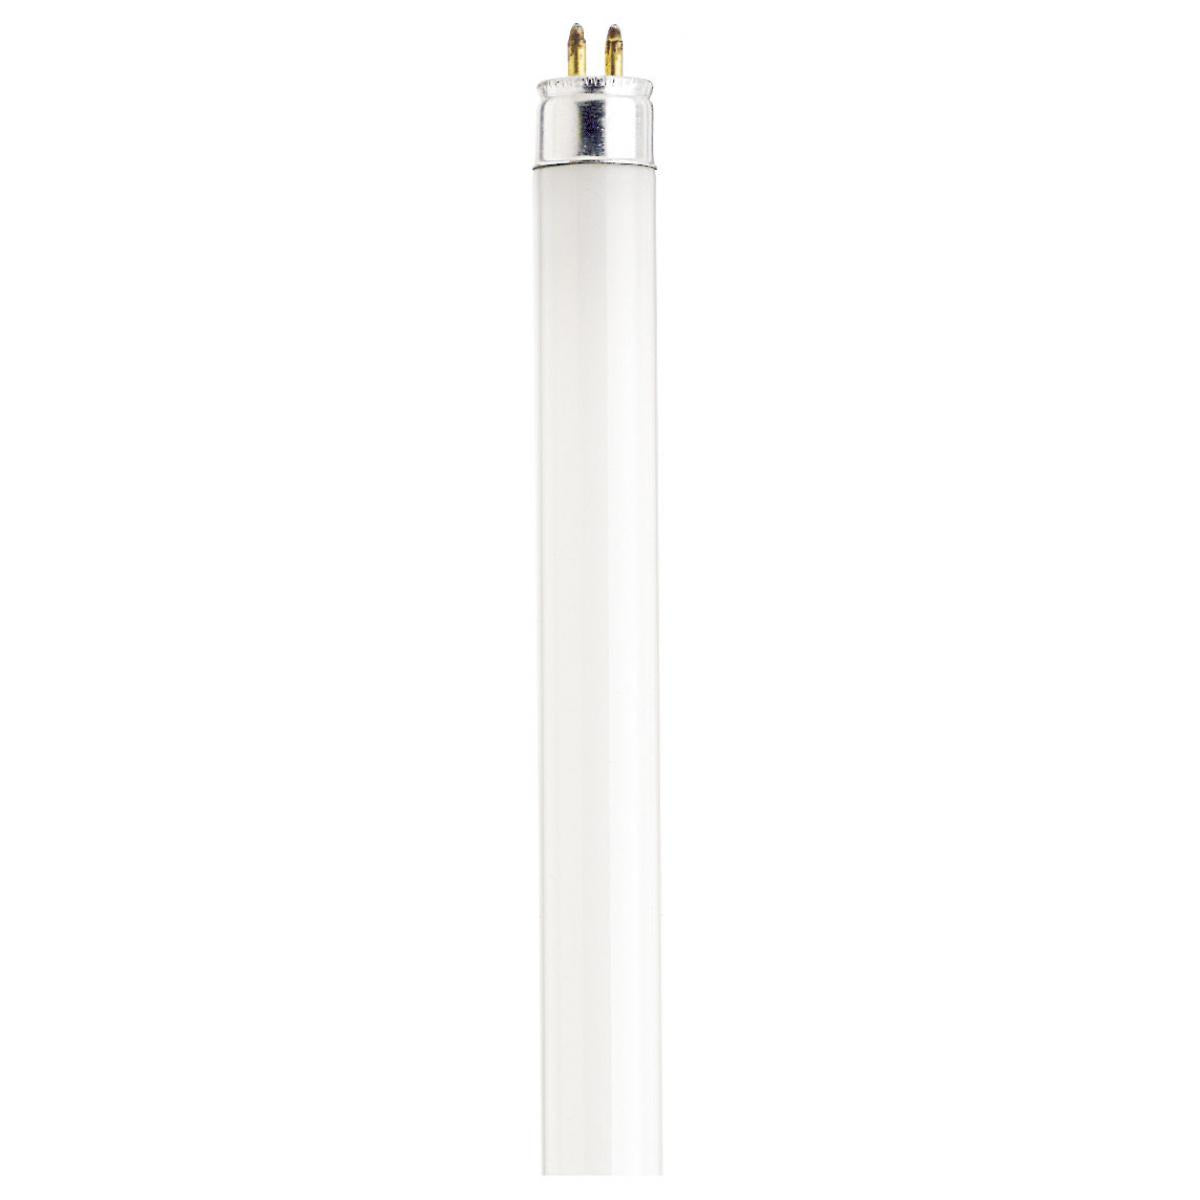 Satco S2911 13w T5 F13T5/D Daylight 21 inch Preheat Fluorescent Tube Light